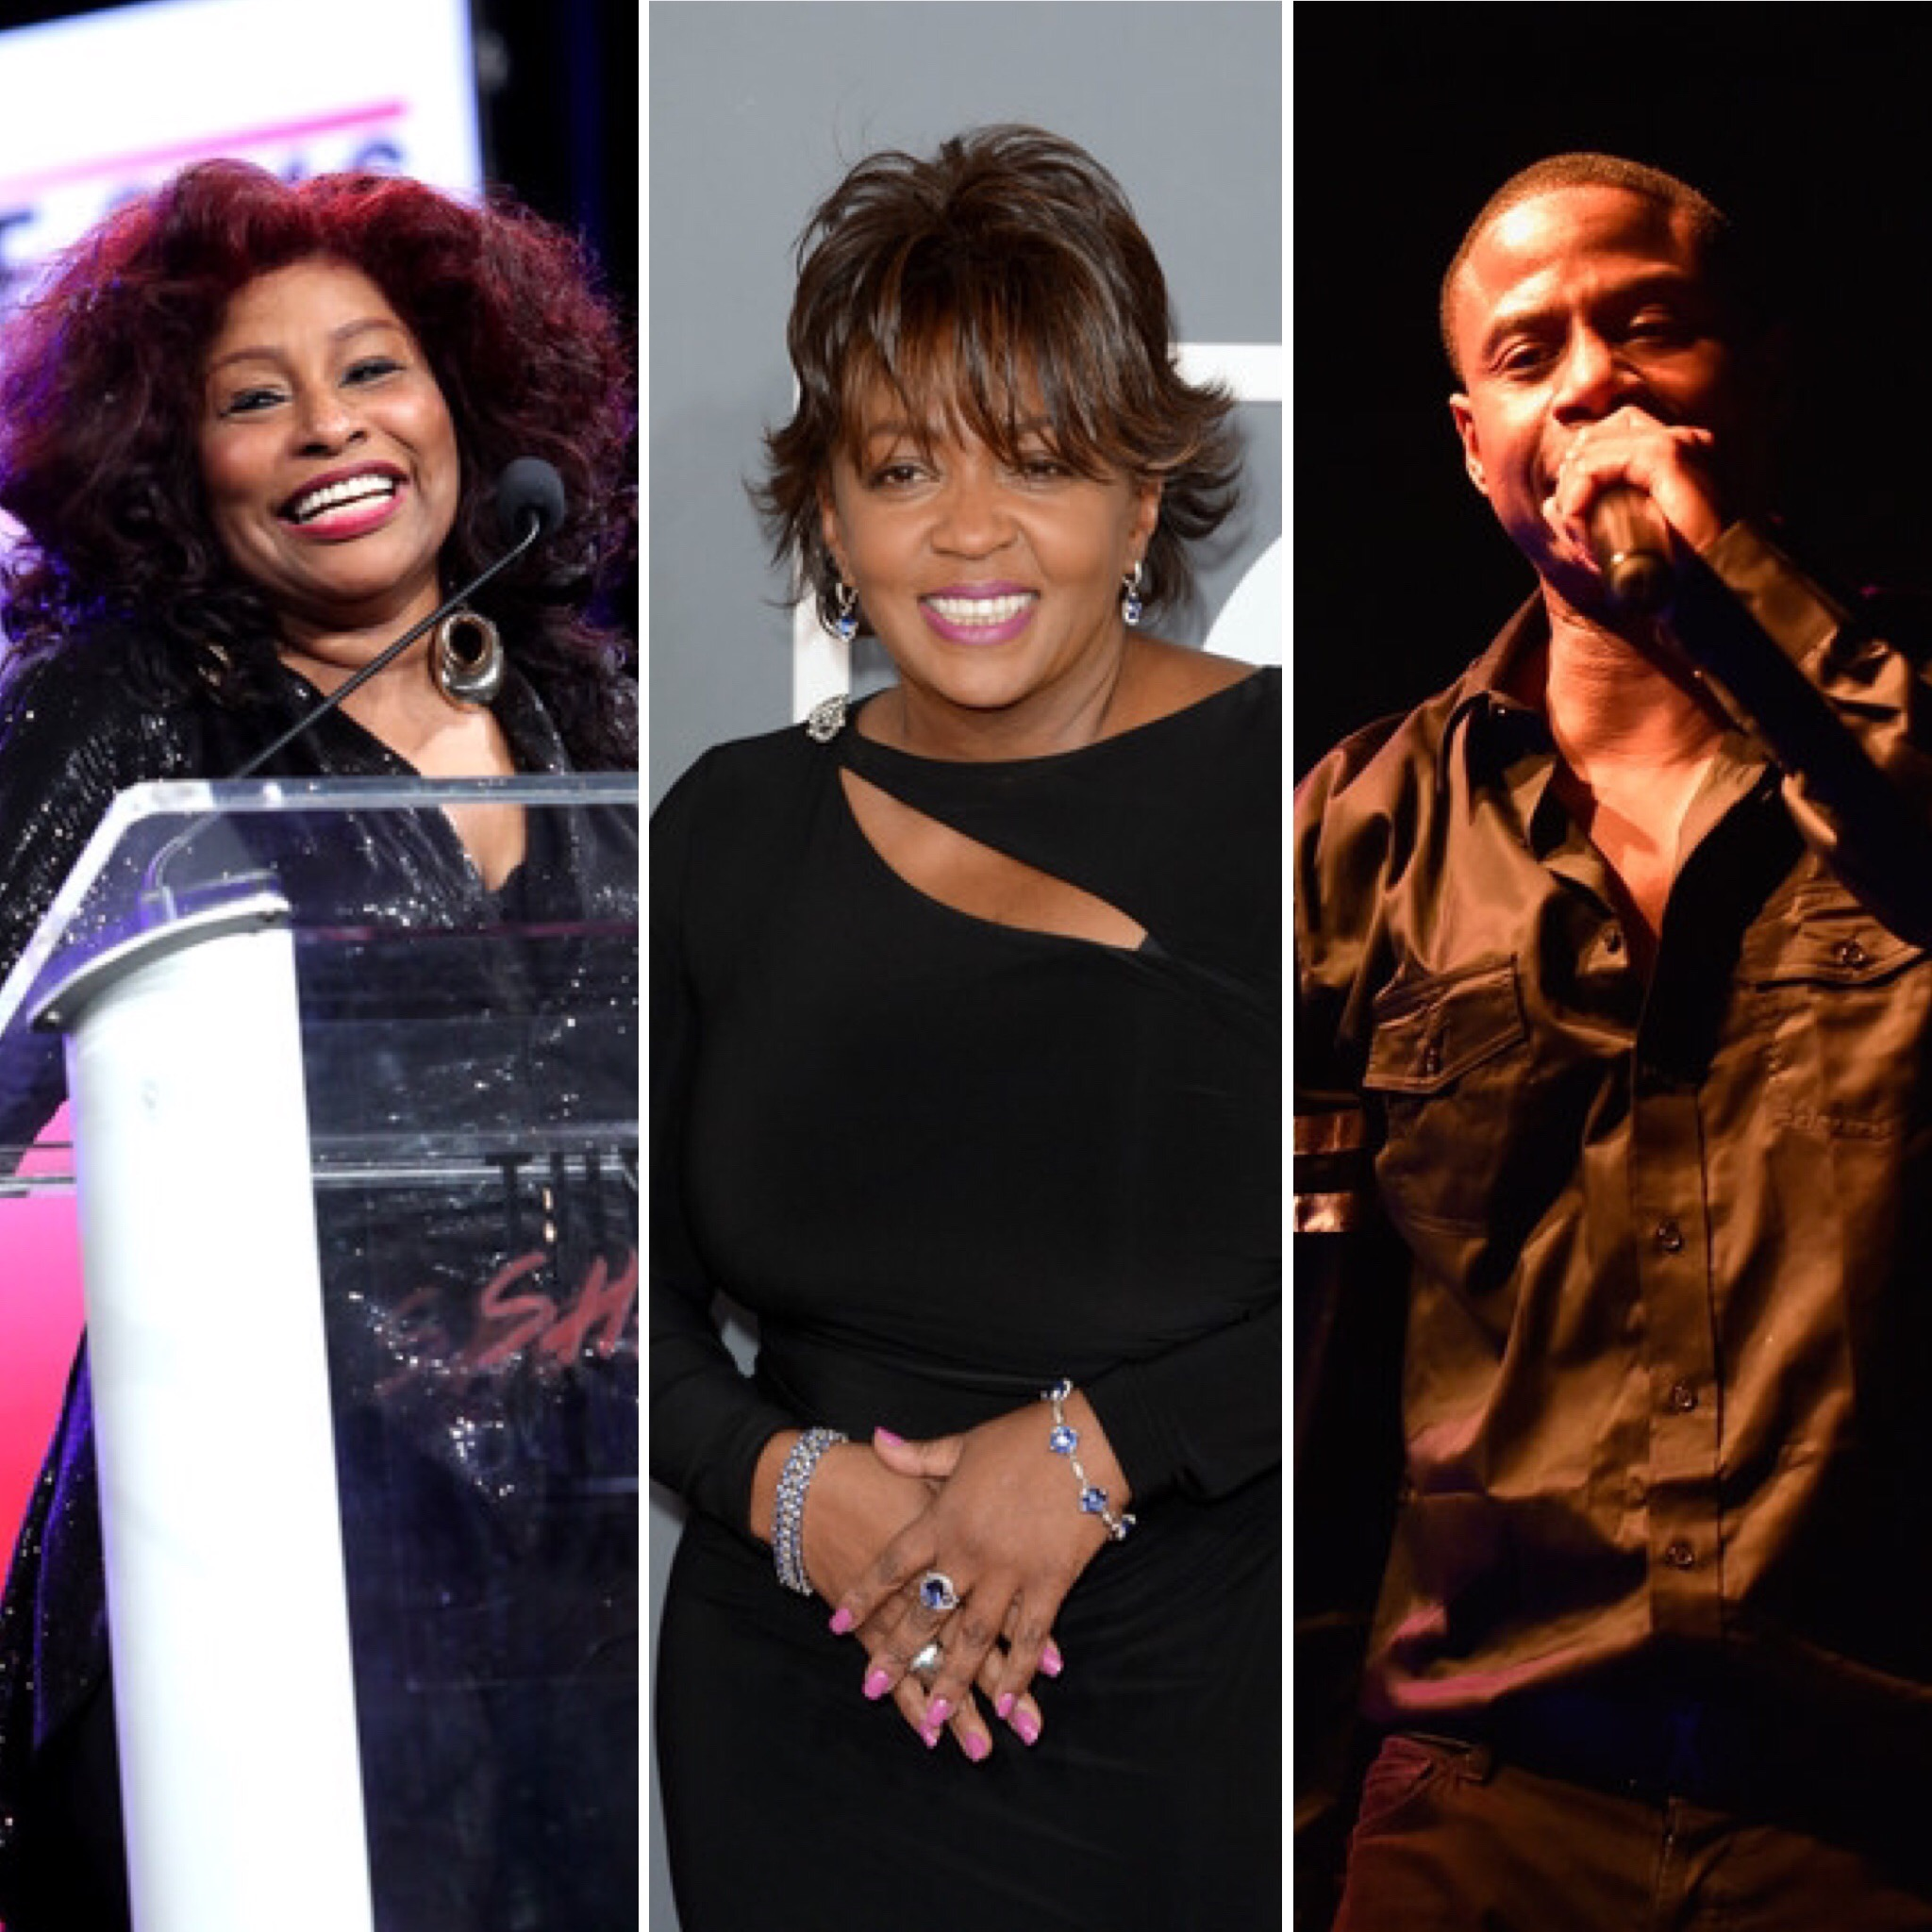 (L-R): Chaka Khan, Anita Baker and Doug E. Fresh